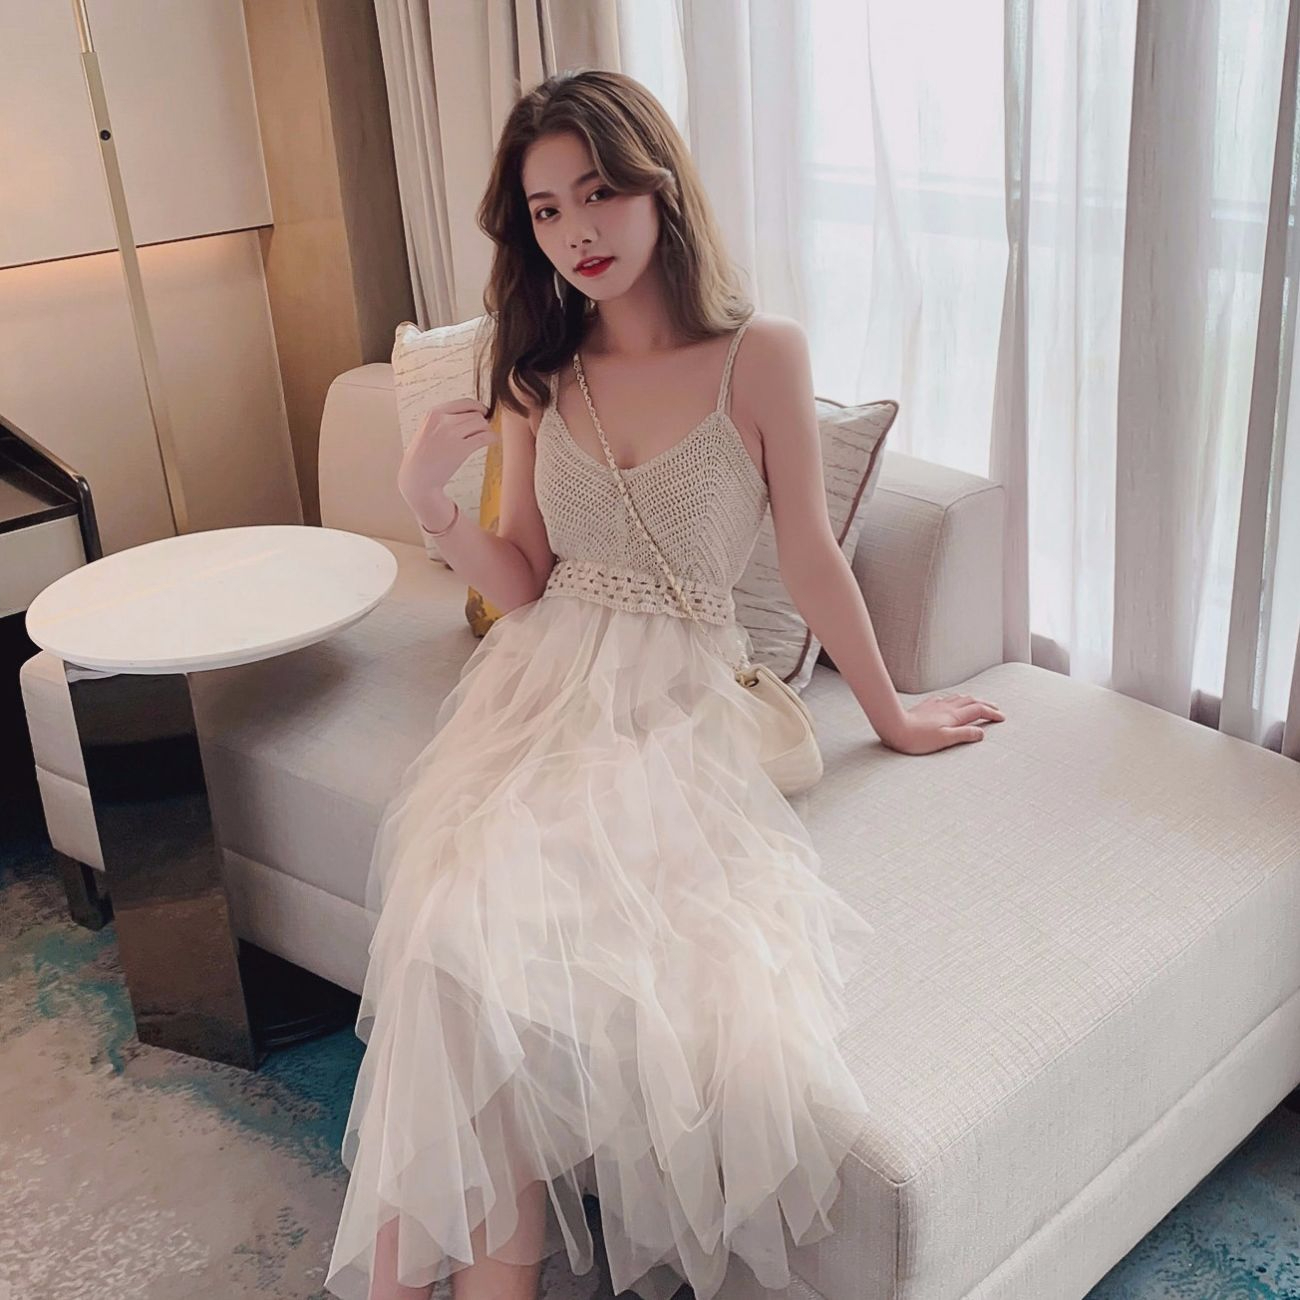 Lace Party Dress Solid Ruffles Knitting Patchwork Women Spaghetti Strap Dress 2019 Mesh Backless V neck Long Dress Vestidos